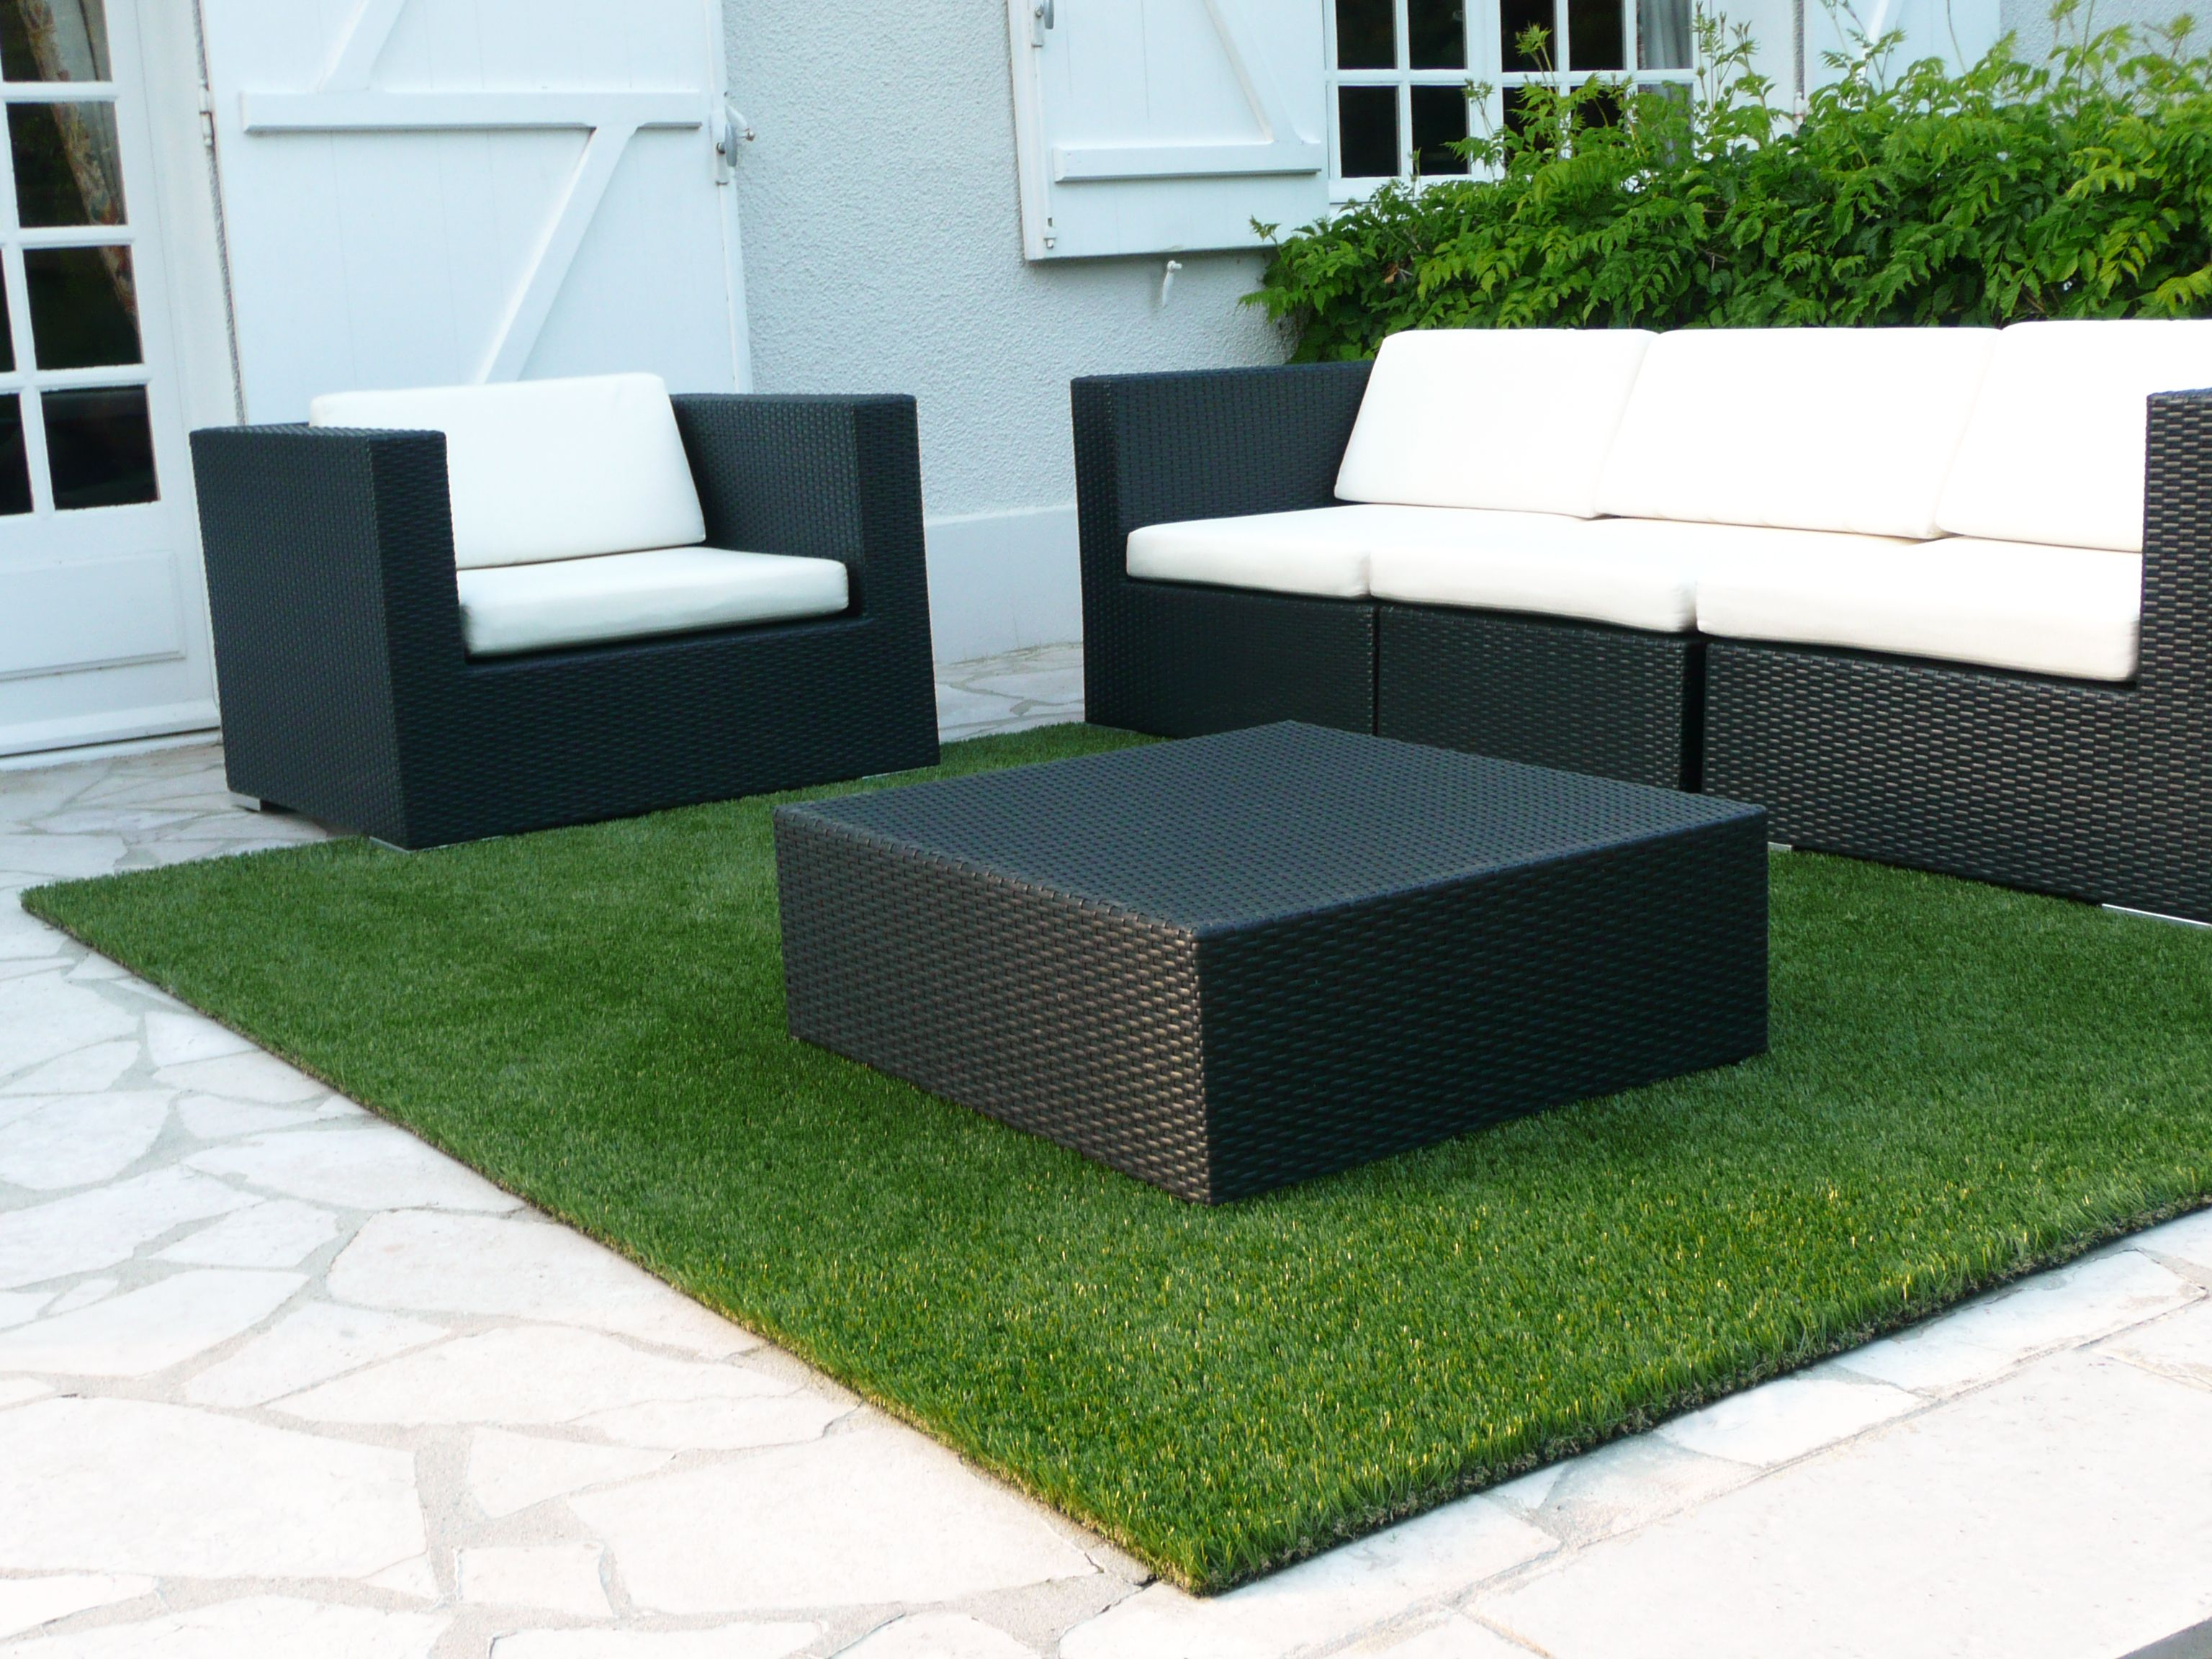 le vert s 39 invite partout m me sur cette terrasse avec ce tapis en gazon synth tique du gazon. Black Bedroom Furniture Sets. Home Design Ideas